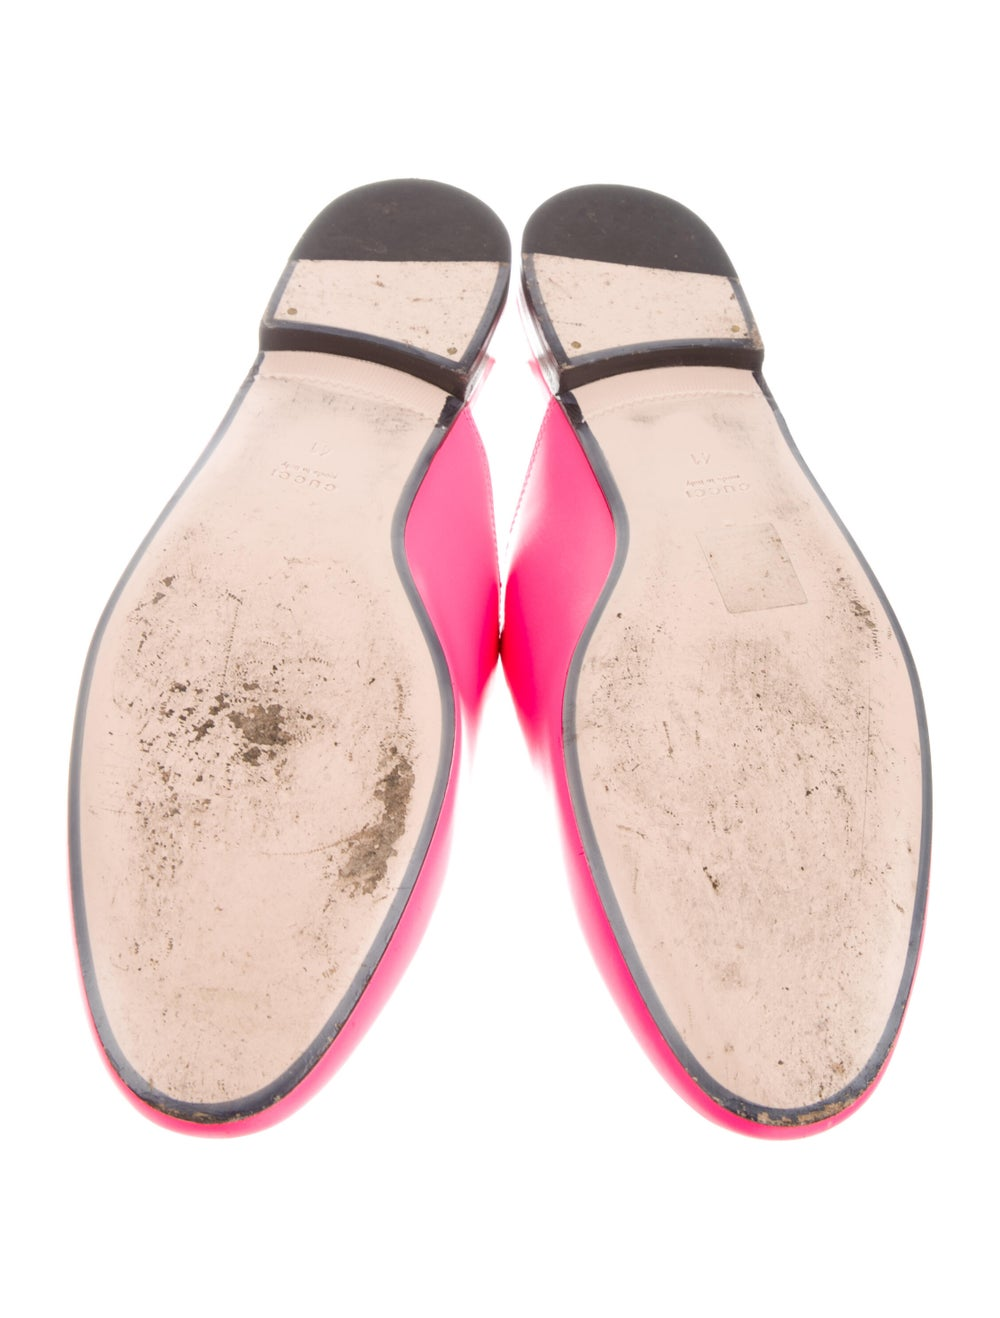 Gucci Princetown Horsebit Accent Mules Pink - image 5